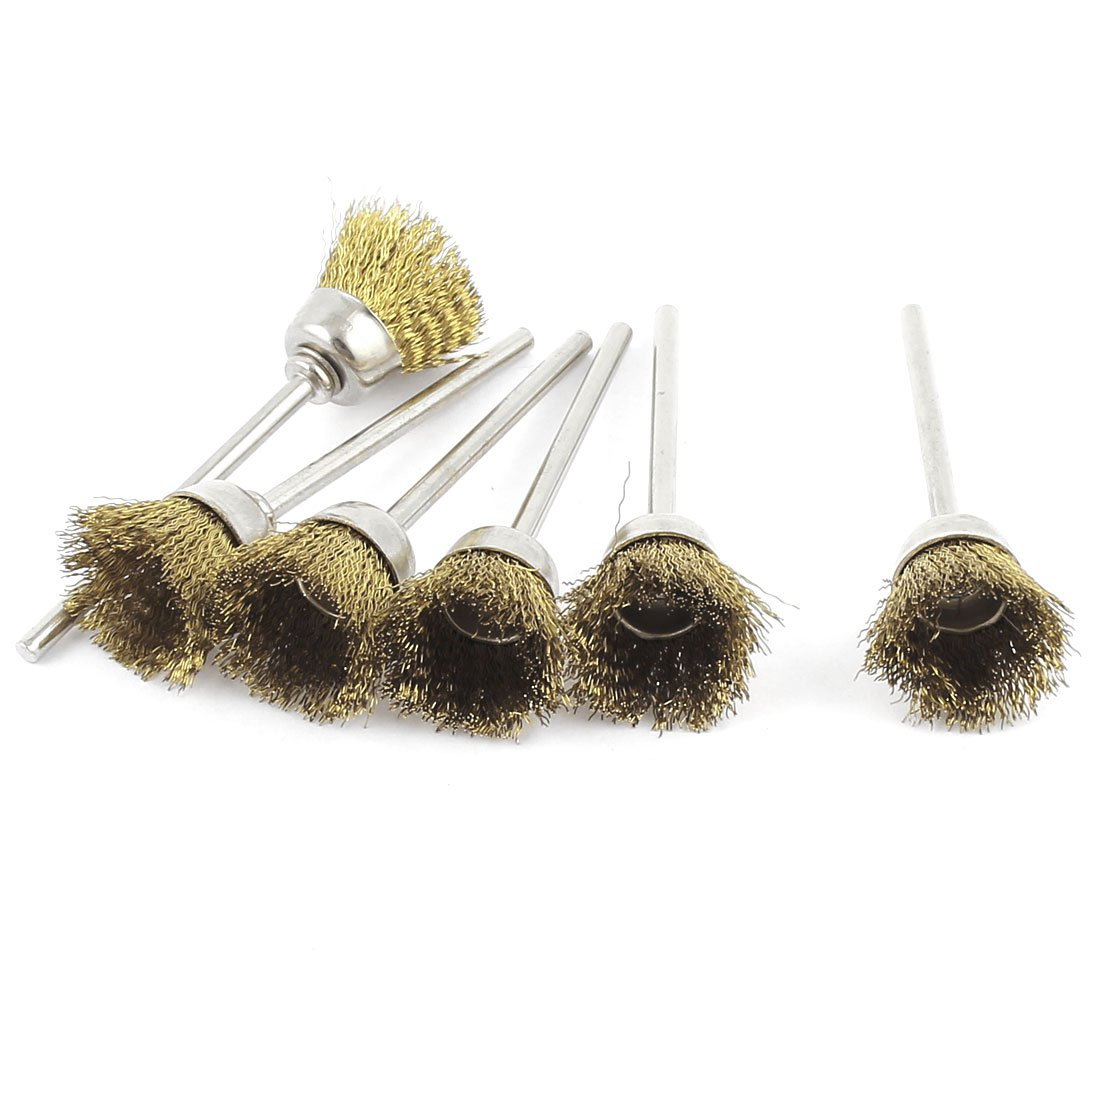 6 Pcs 2.3mm Shank 15mm Cup Shape Brass Wire Polishing Brush